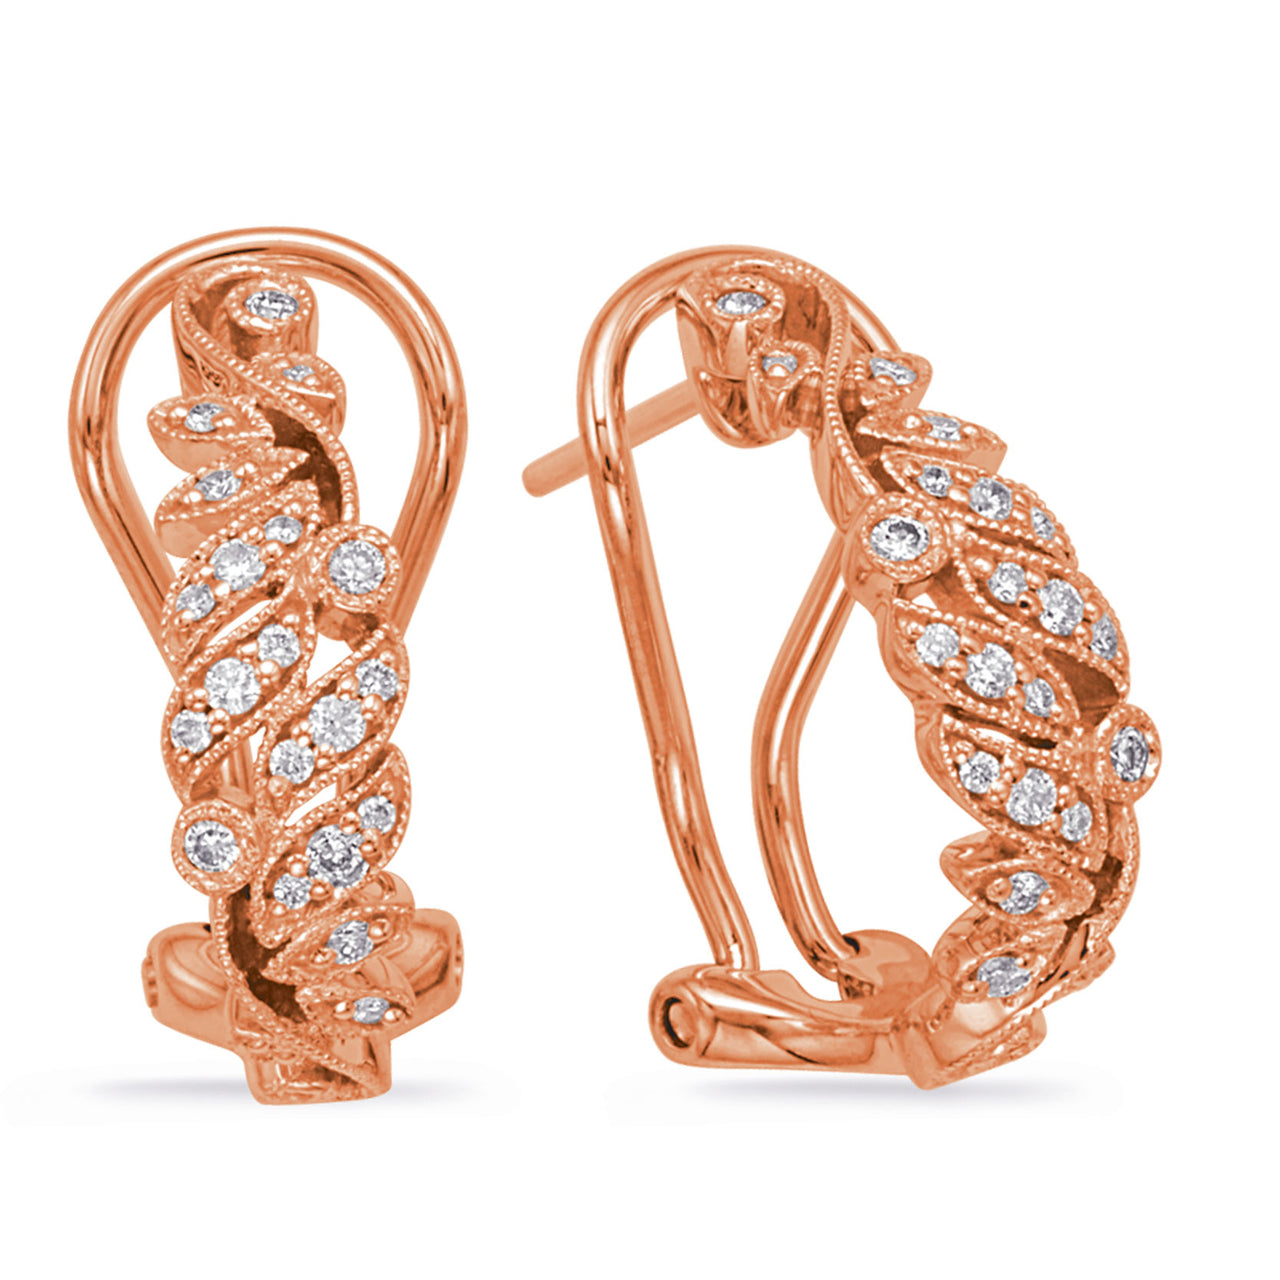 14K Rose Gold Diamond Earrings.#1090-E7996RG